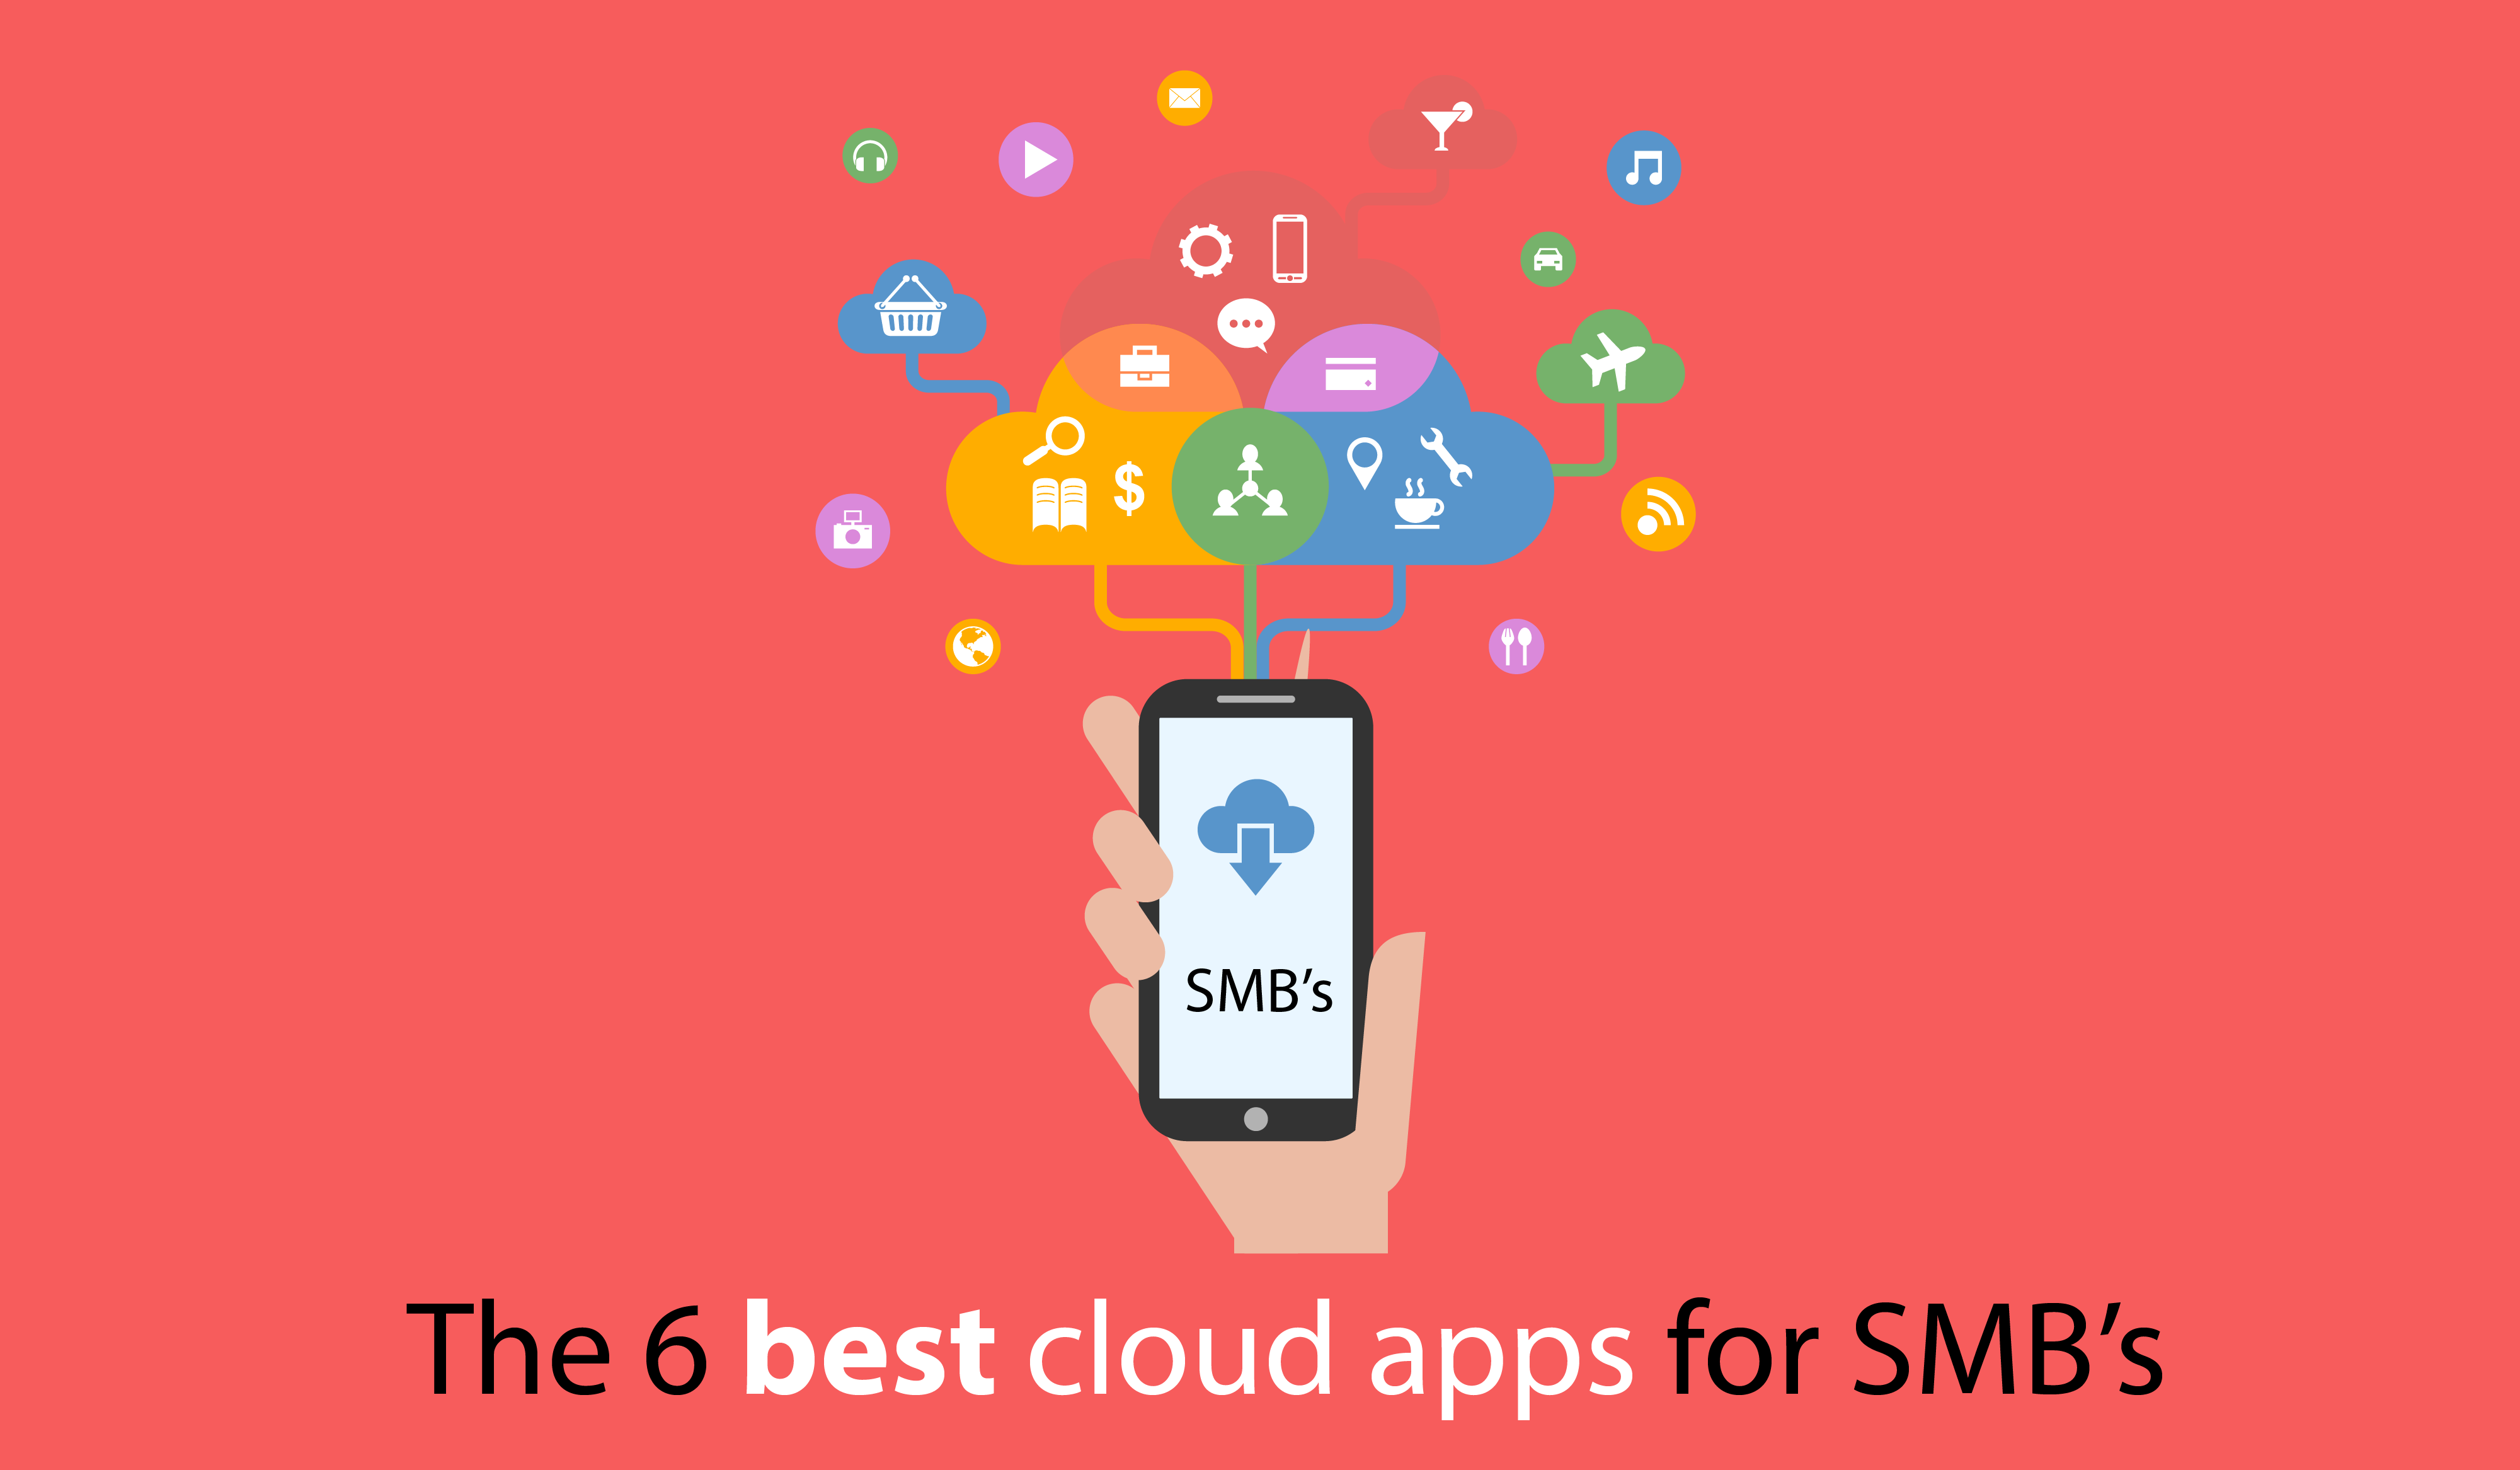 The 6 best cloud apps for SMB's